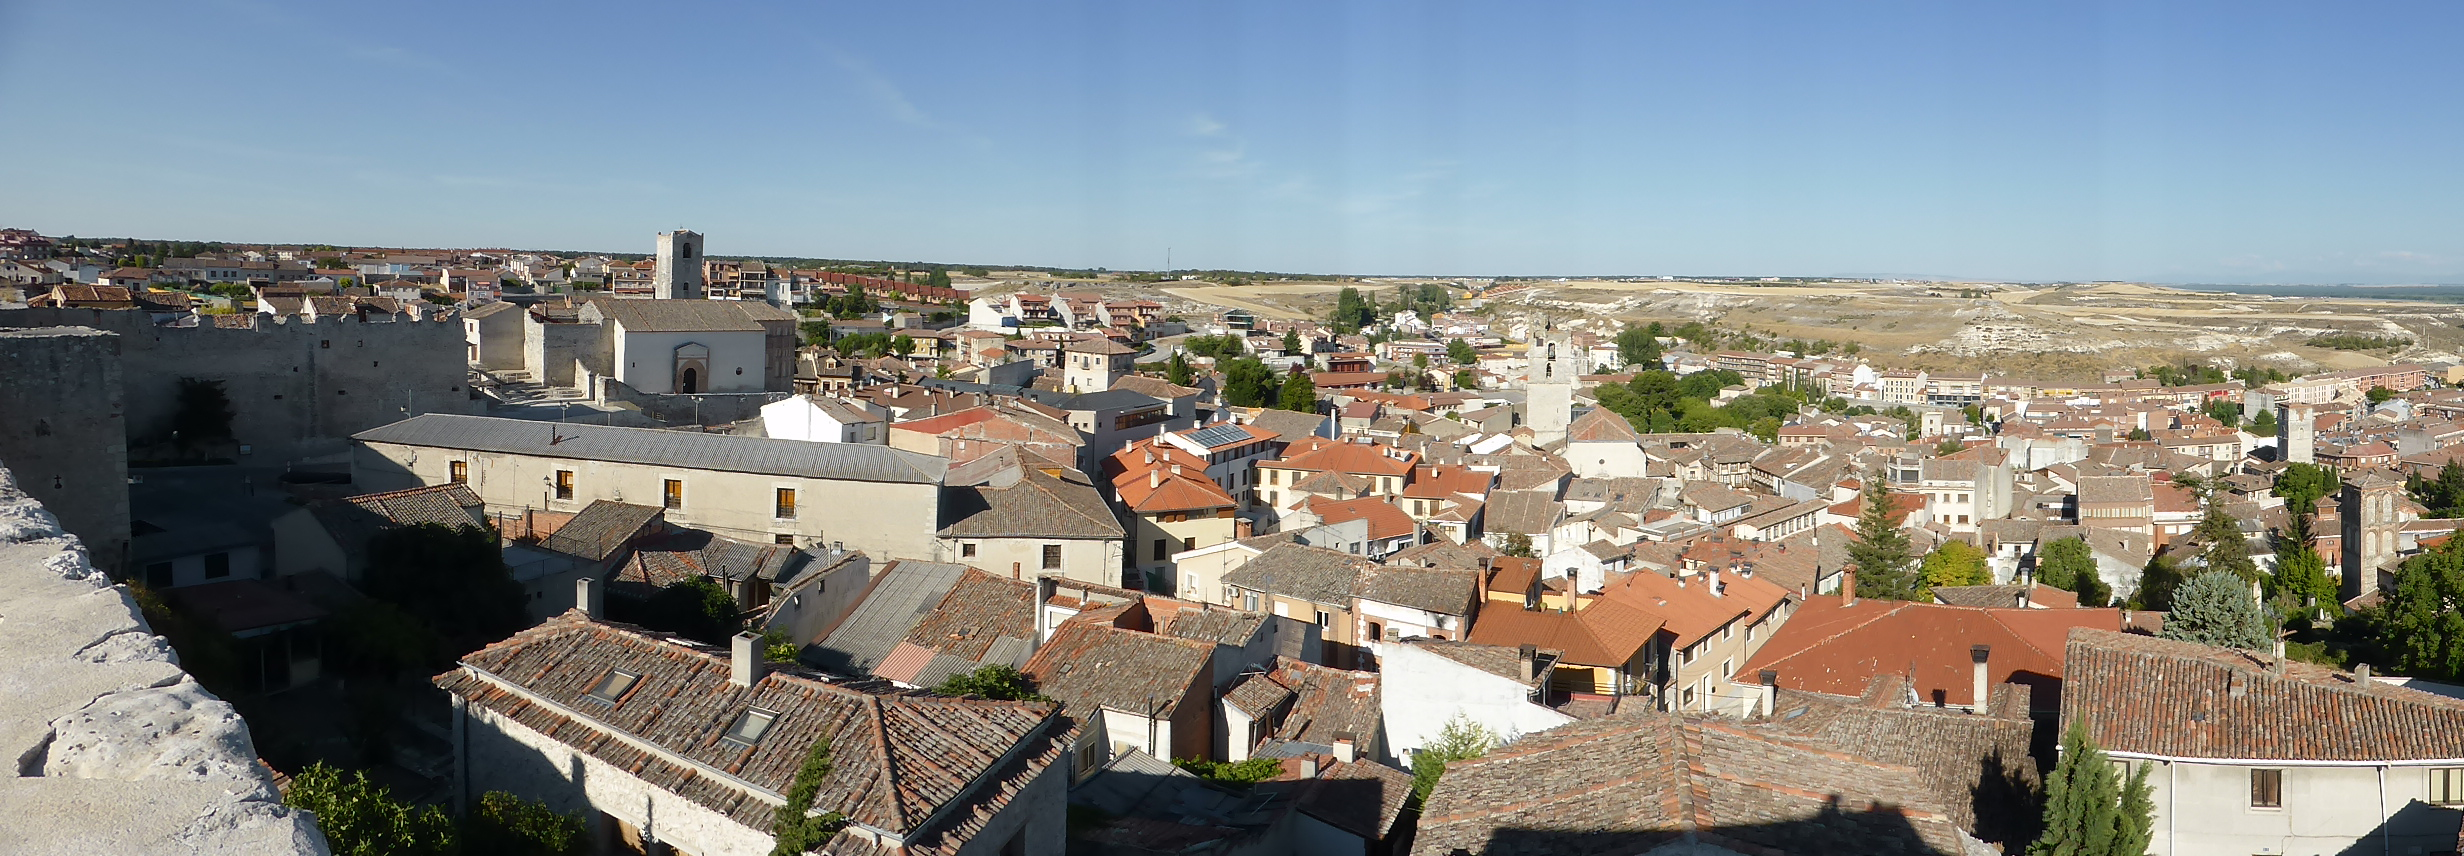 View of Cuellar from the Castle wall walk